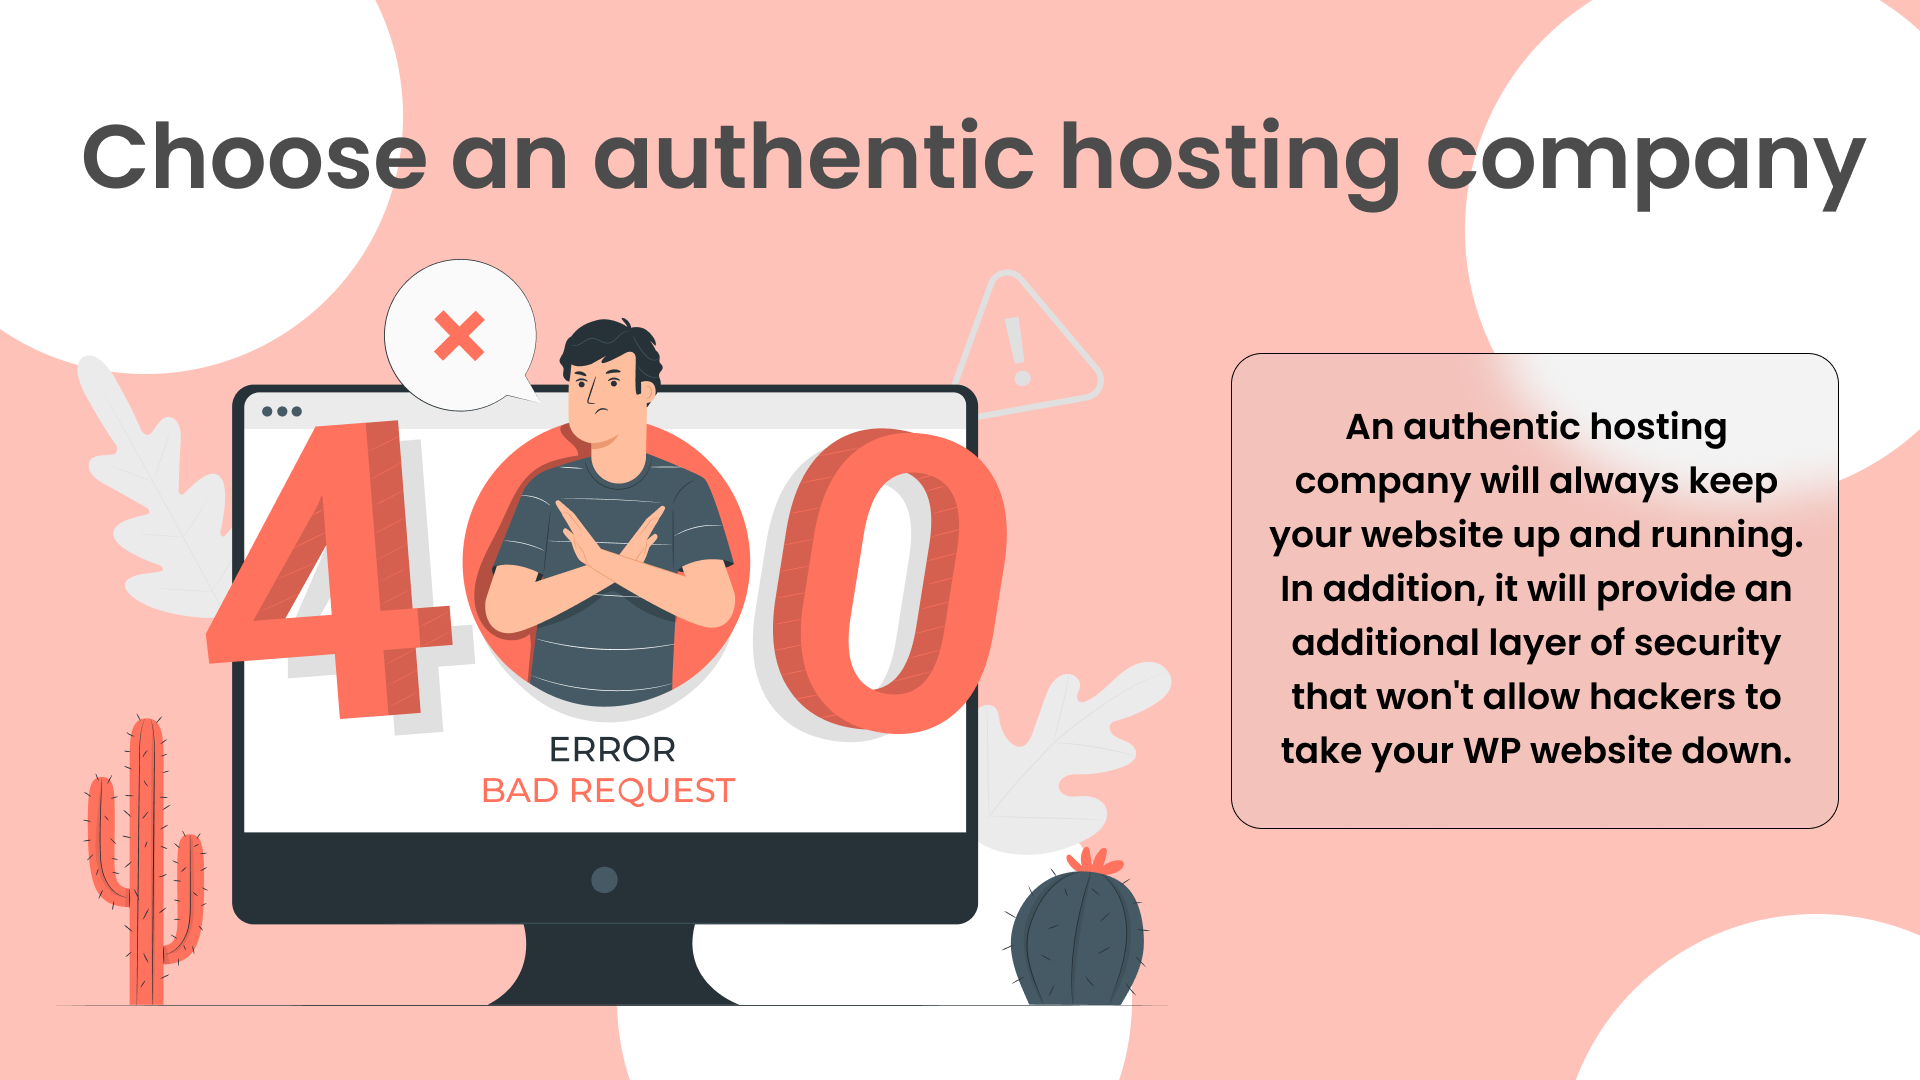 Choose an authentic hosting company